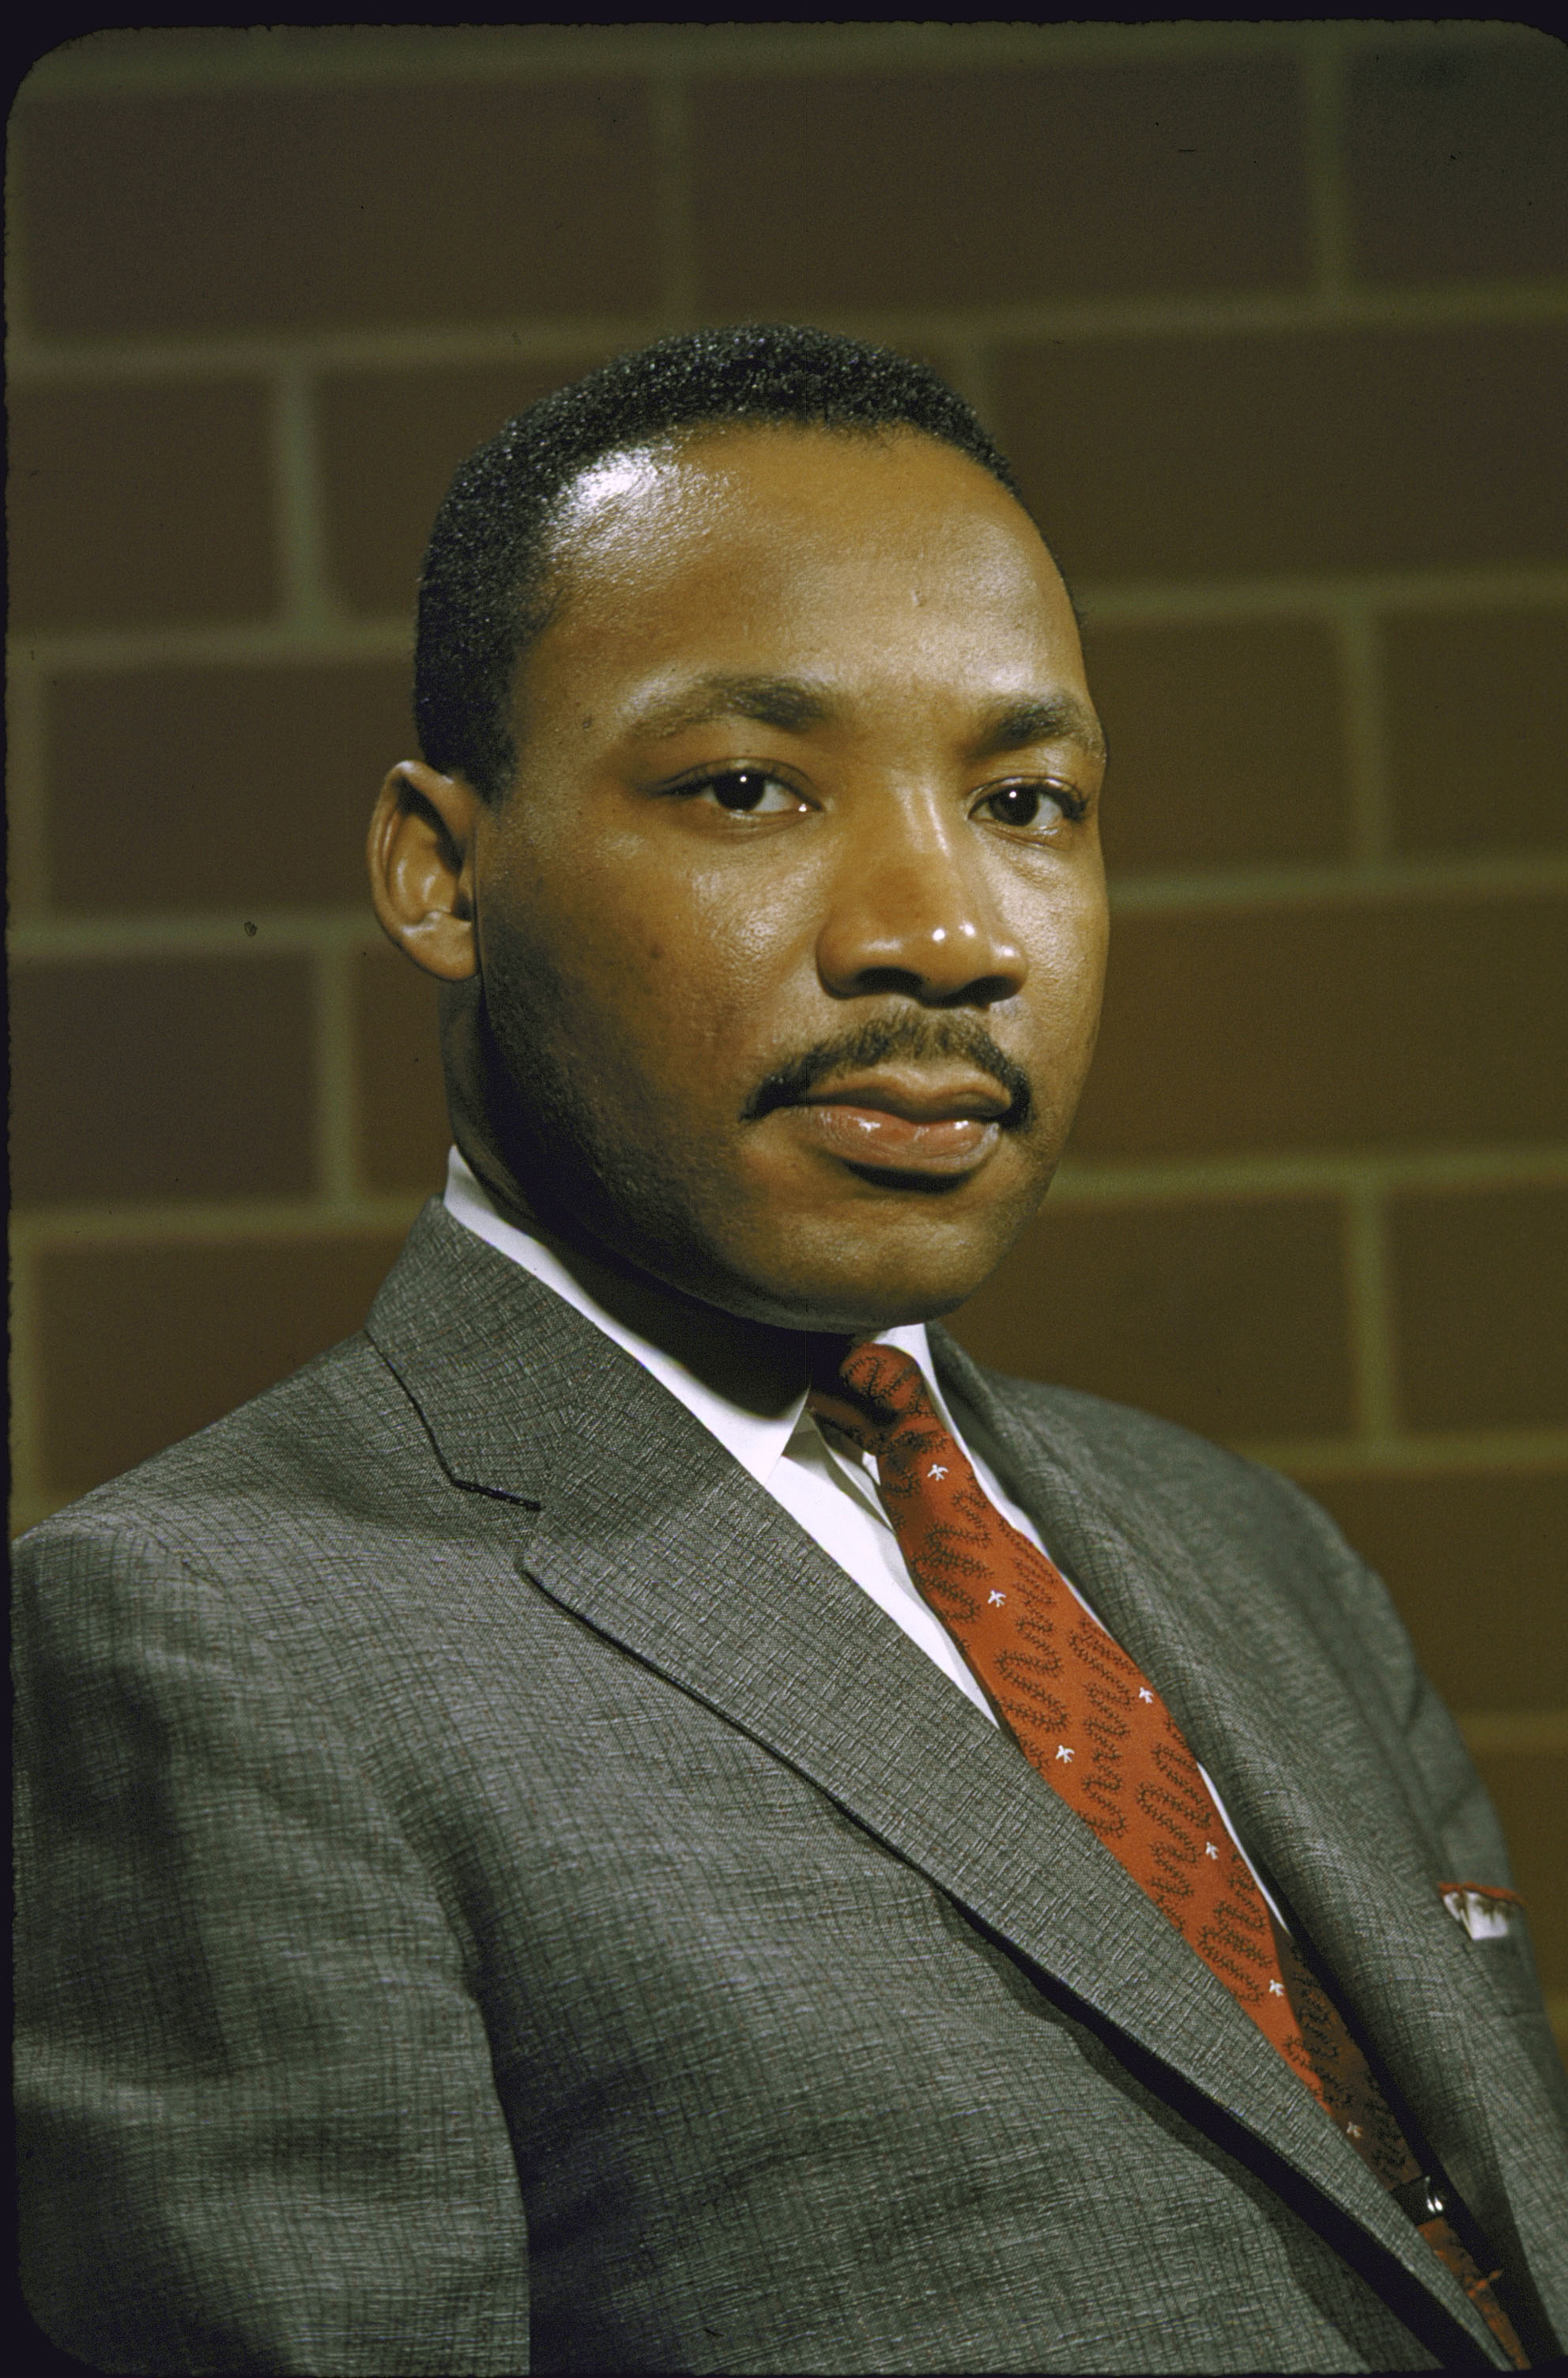 Portrait of Rev. Martin Luther King Jr. in 1957.